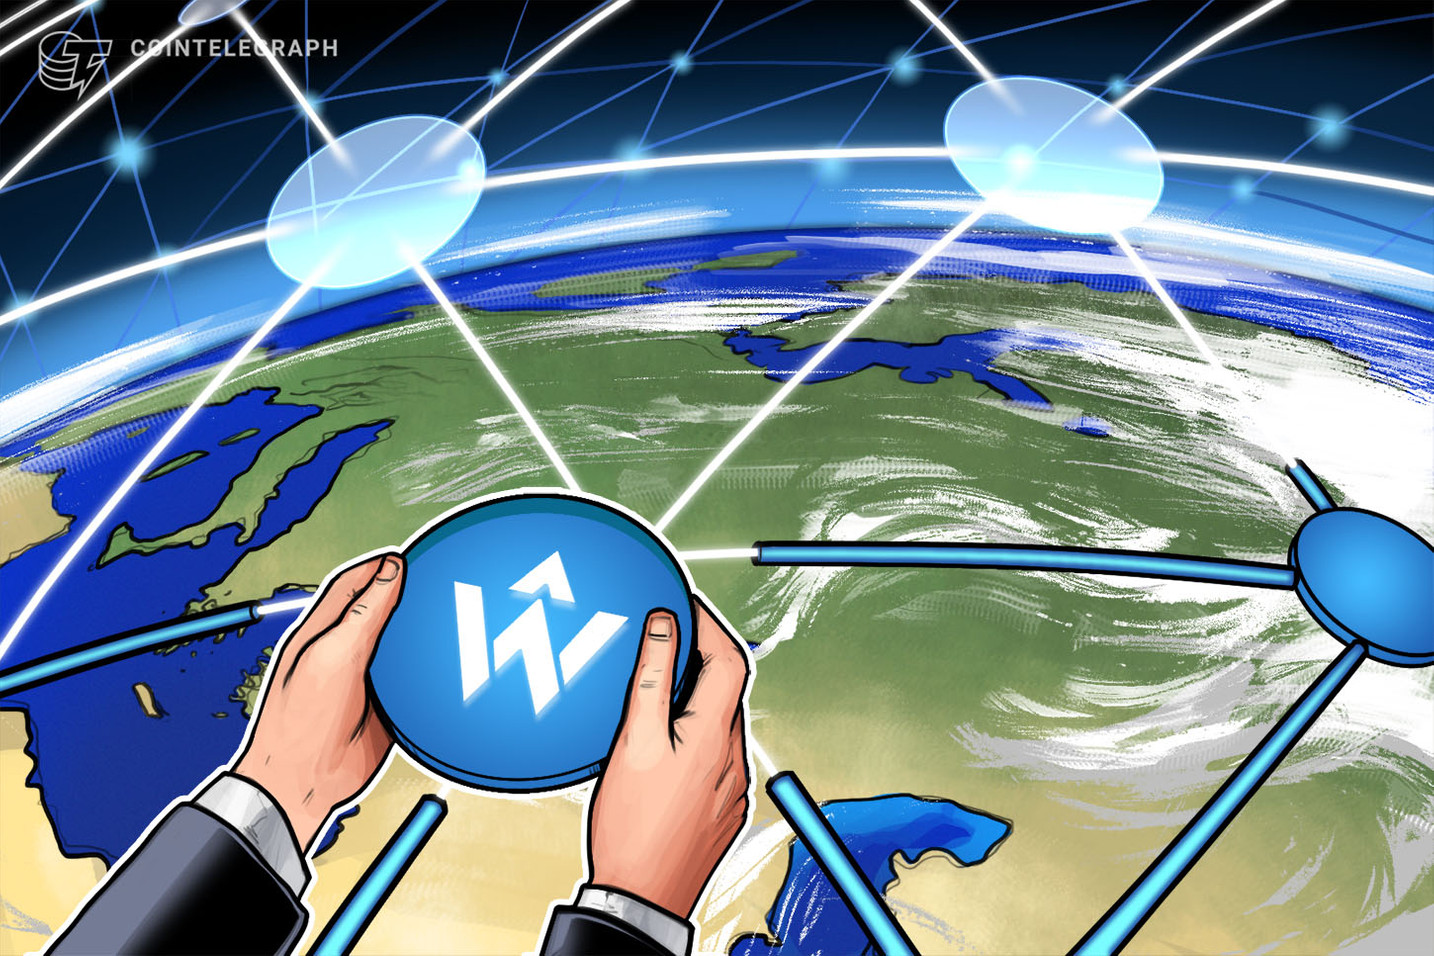 Fixing Blockchain: Startup to Clamp Down on Illicit Activities and Welcome Consumers